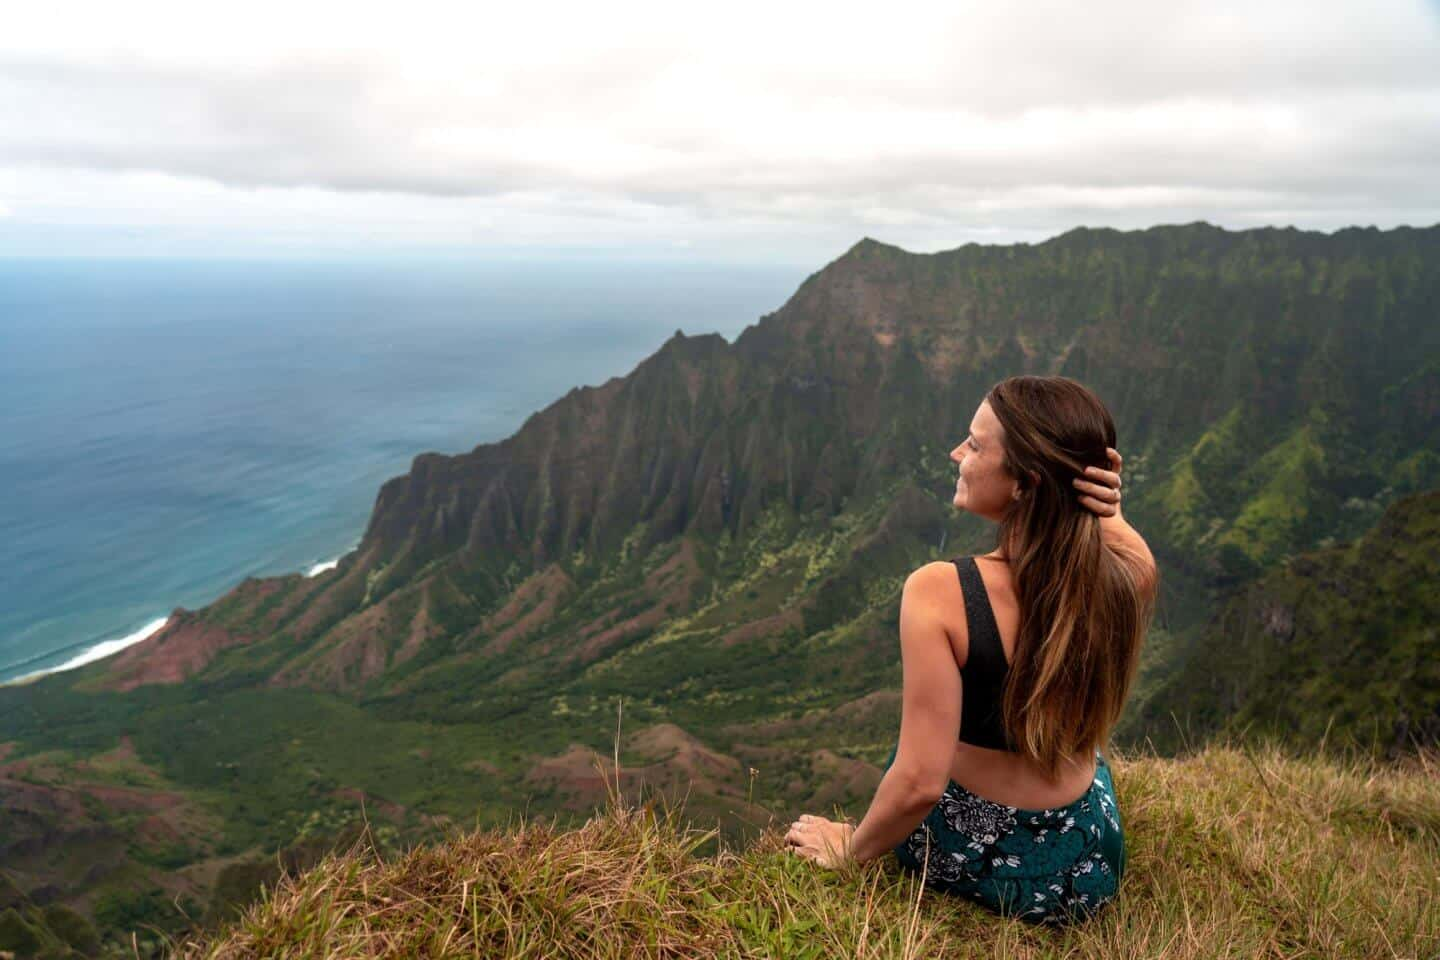 Sophie enjoying views of the Na Pali Coast